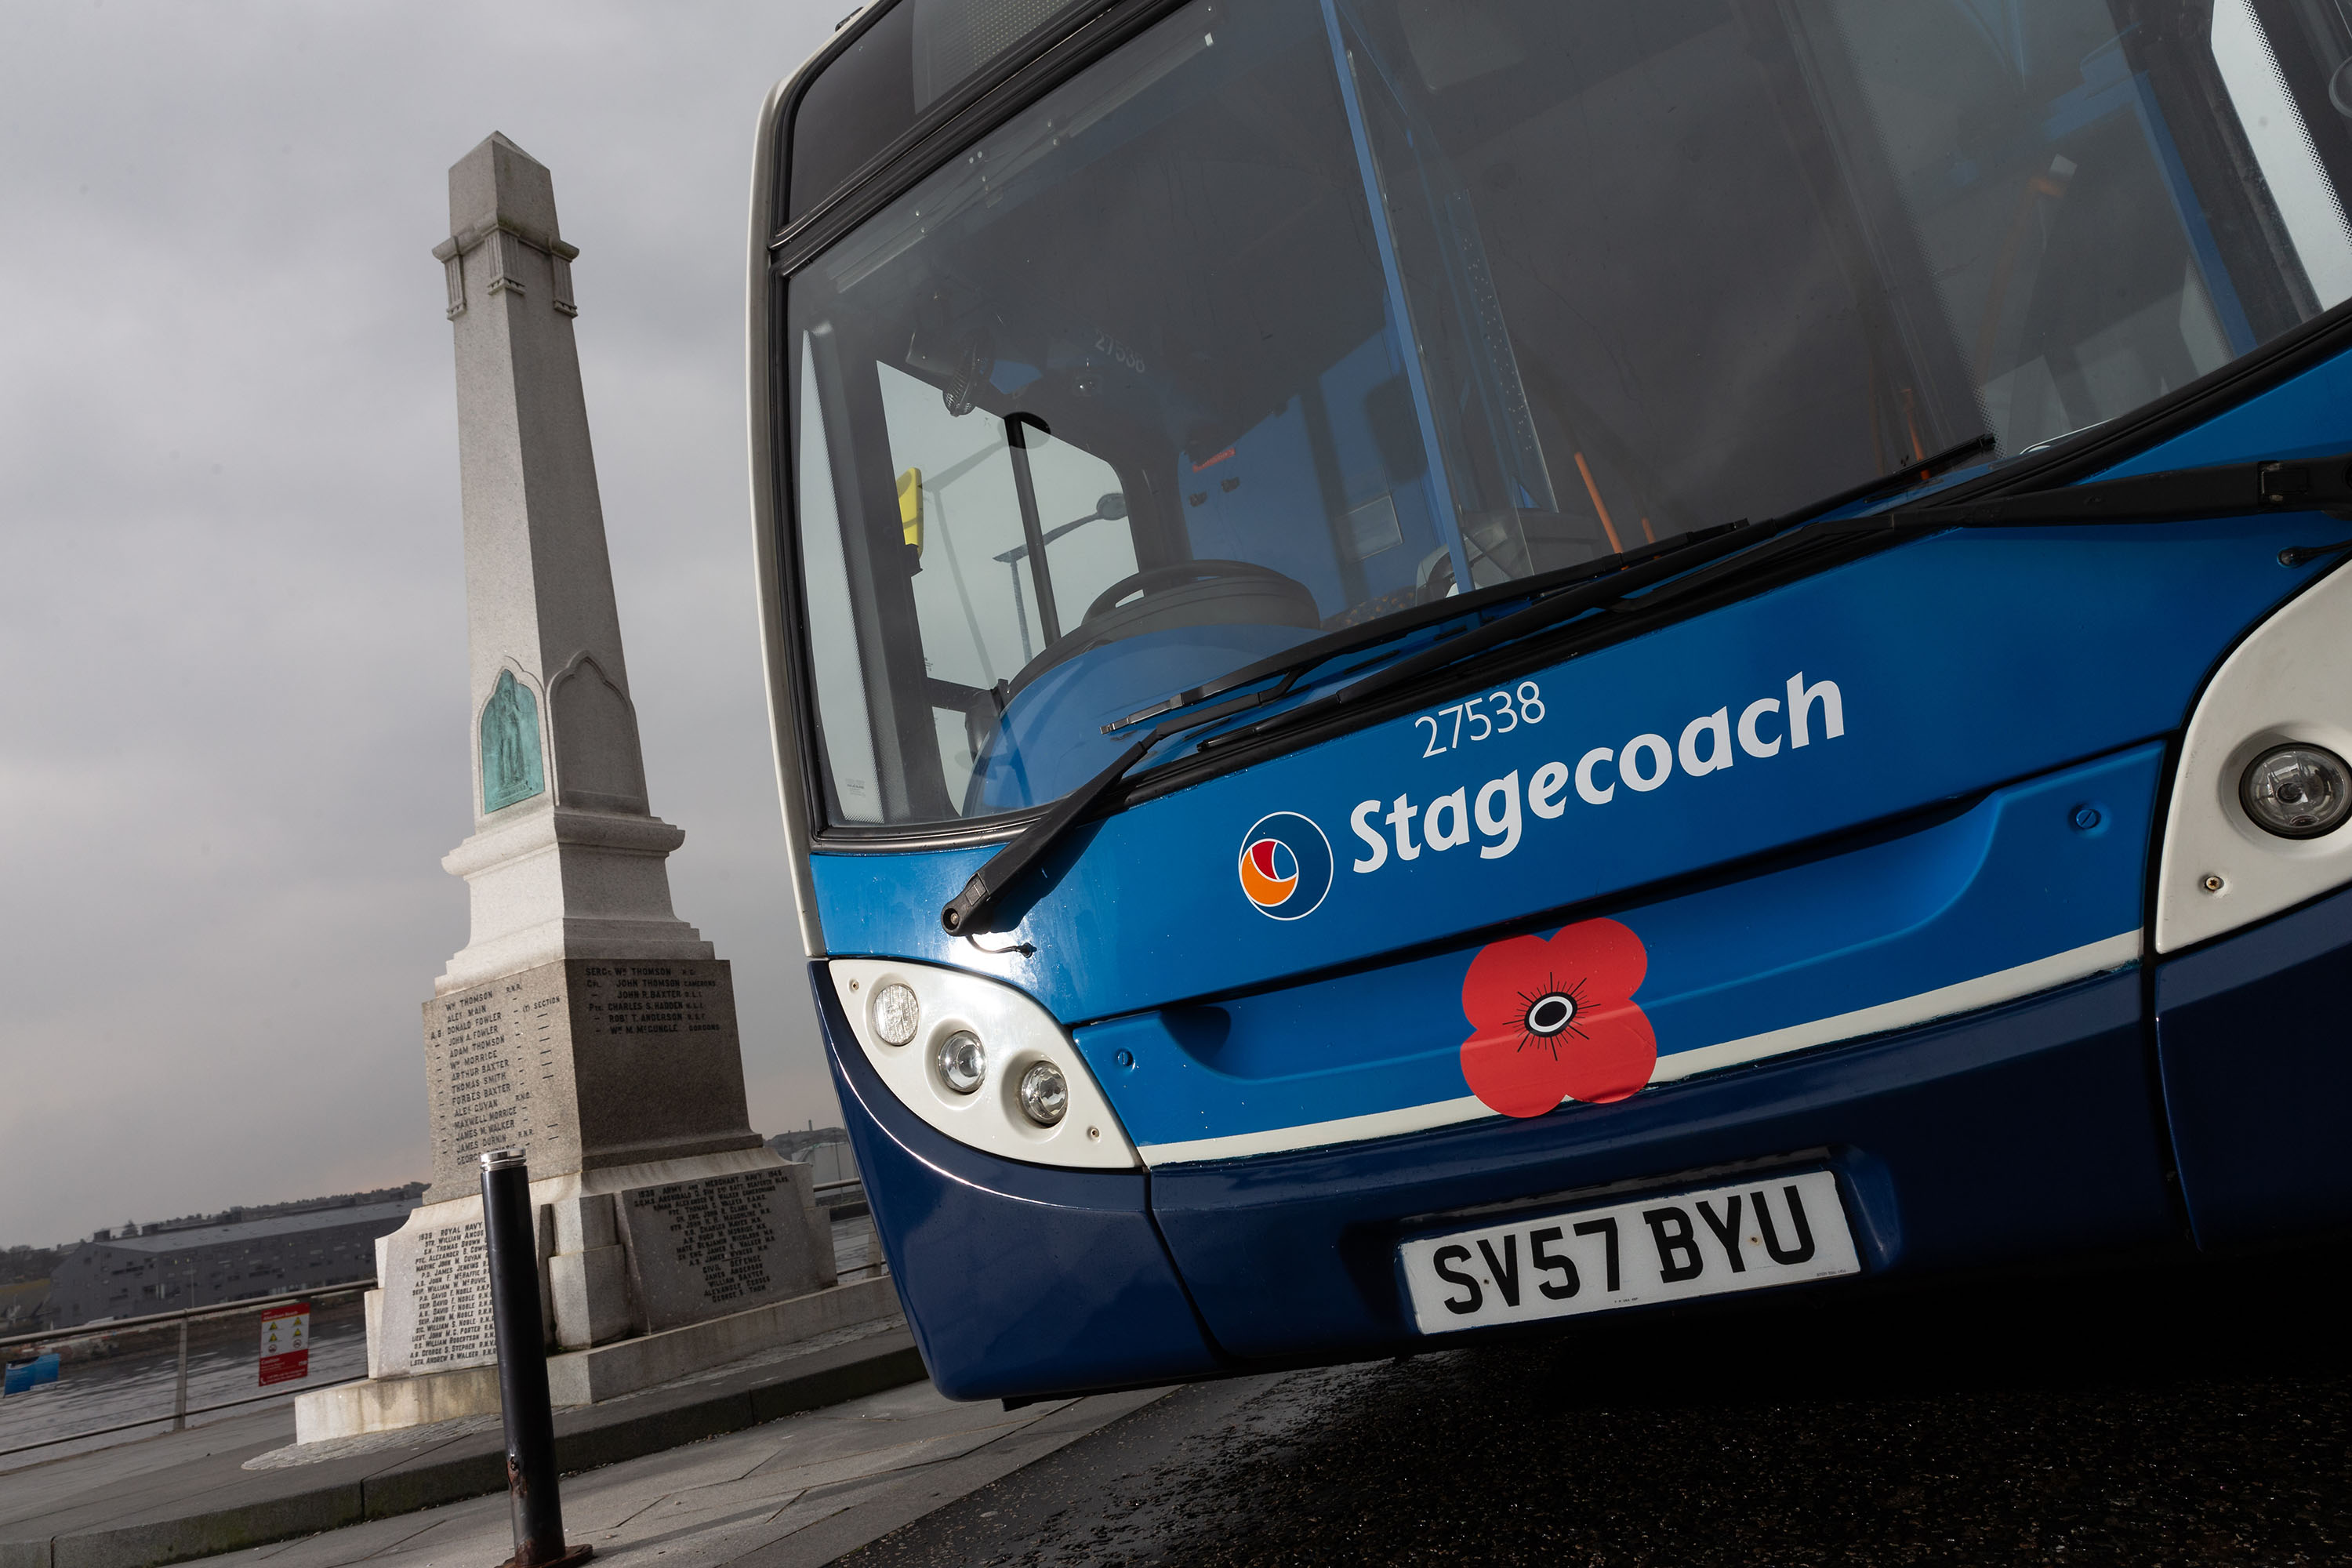 Stagecoach Remembrance Day Bus